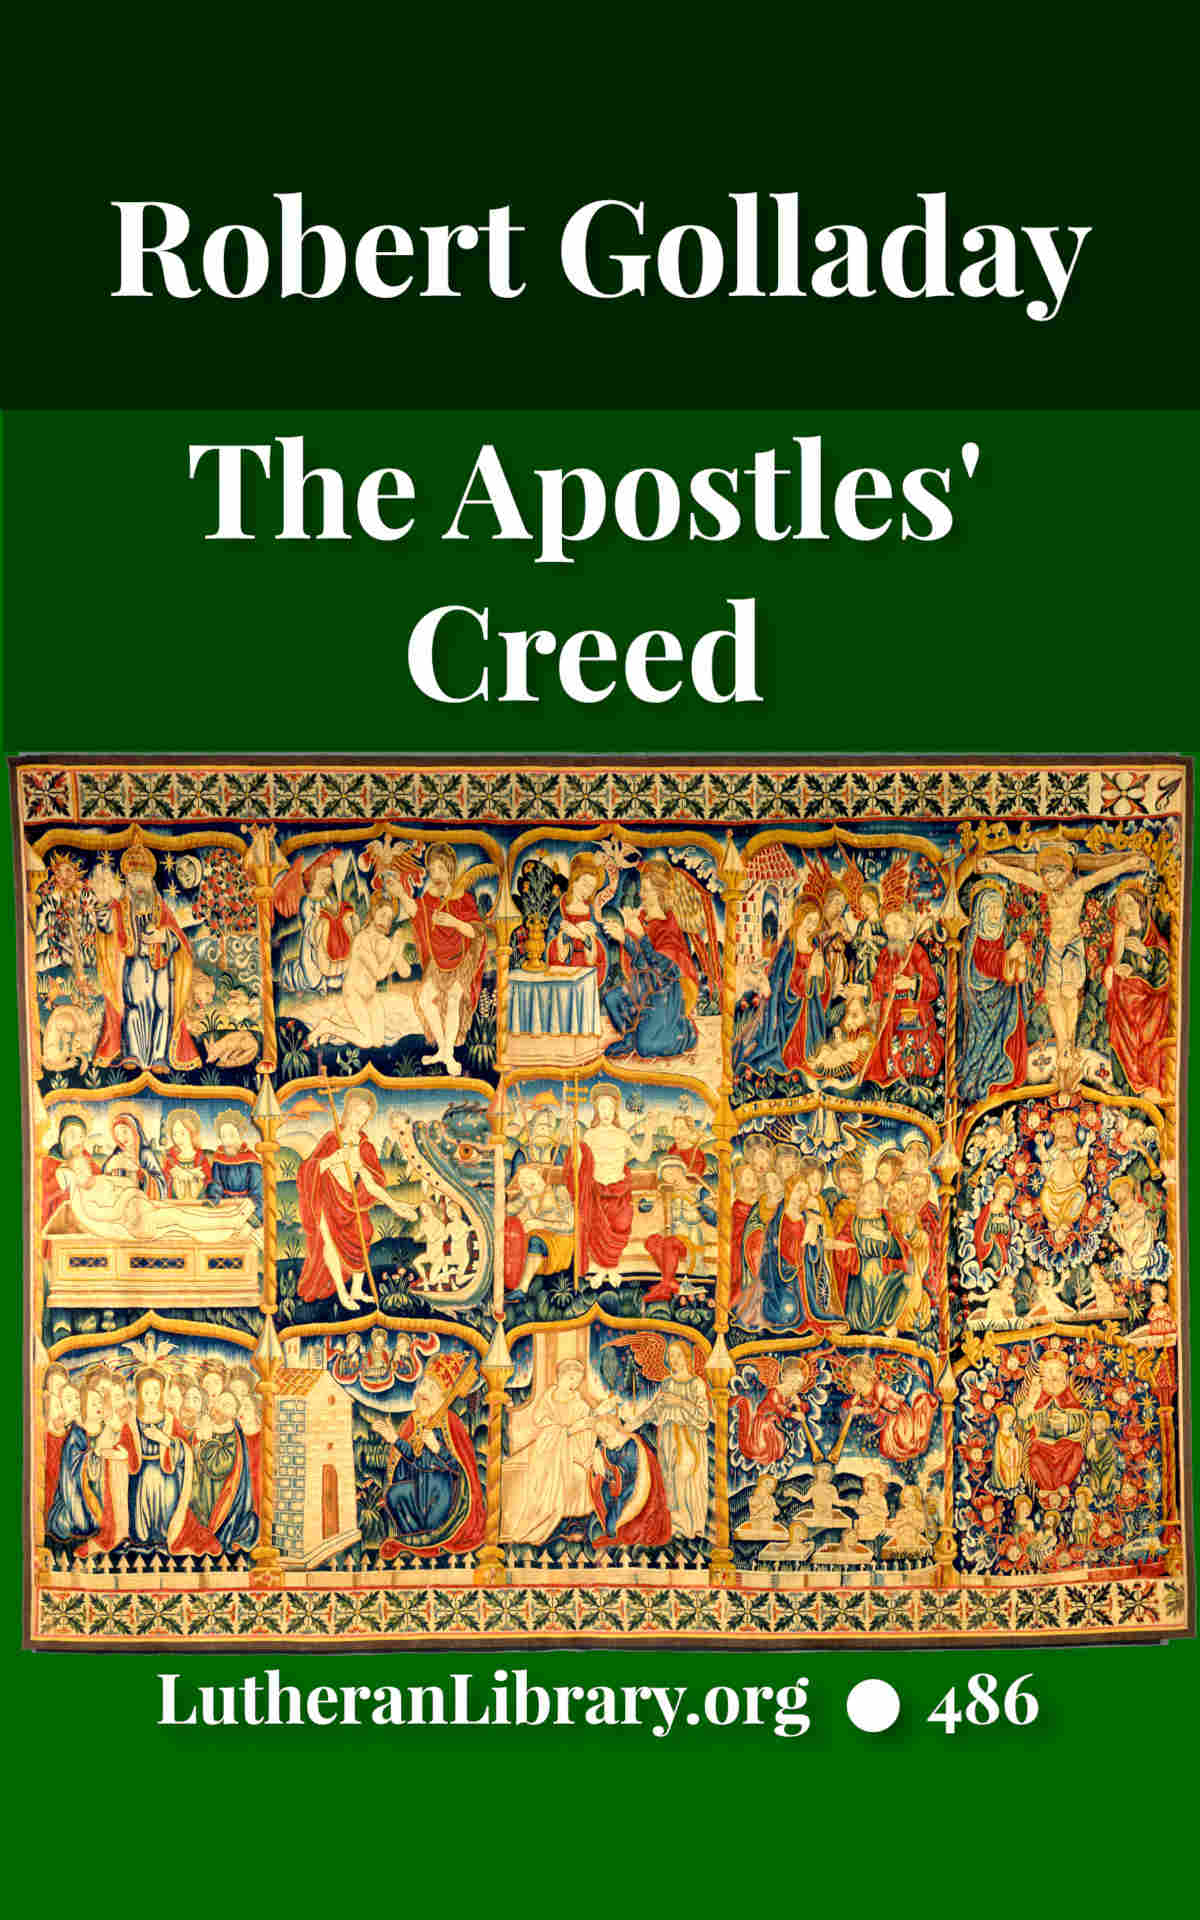 Luther's Small Catechism: Series B – The Apostles' Creed